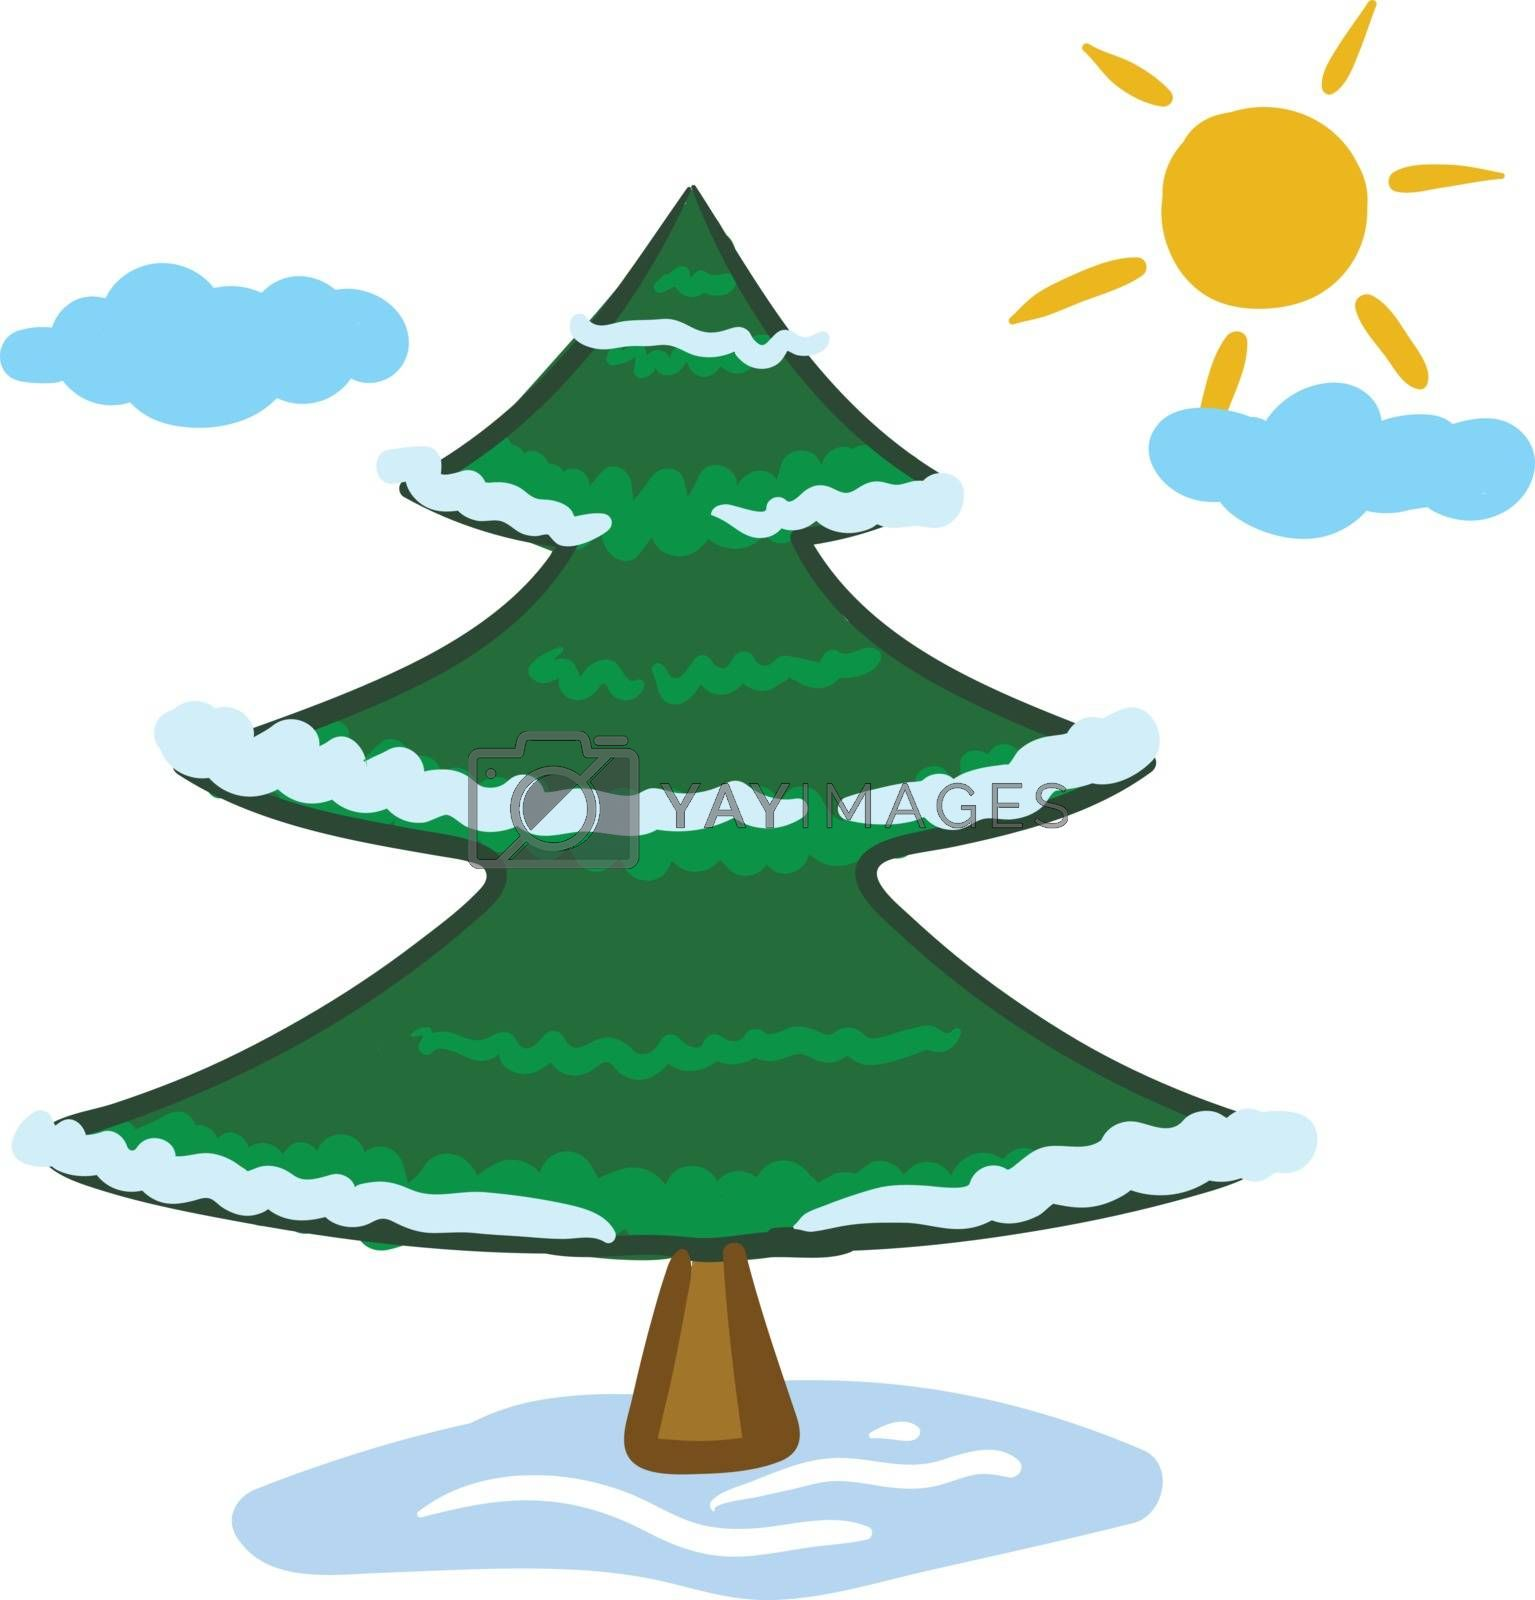 Clipart of a widespread coniferous green tree with a distinctive conical shape and hanging cones  reach high up the sky with few clouds and a rising sun  vector  color drawing or illustration